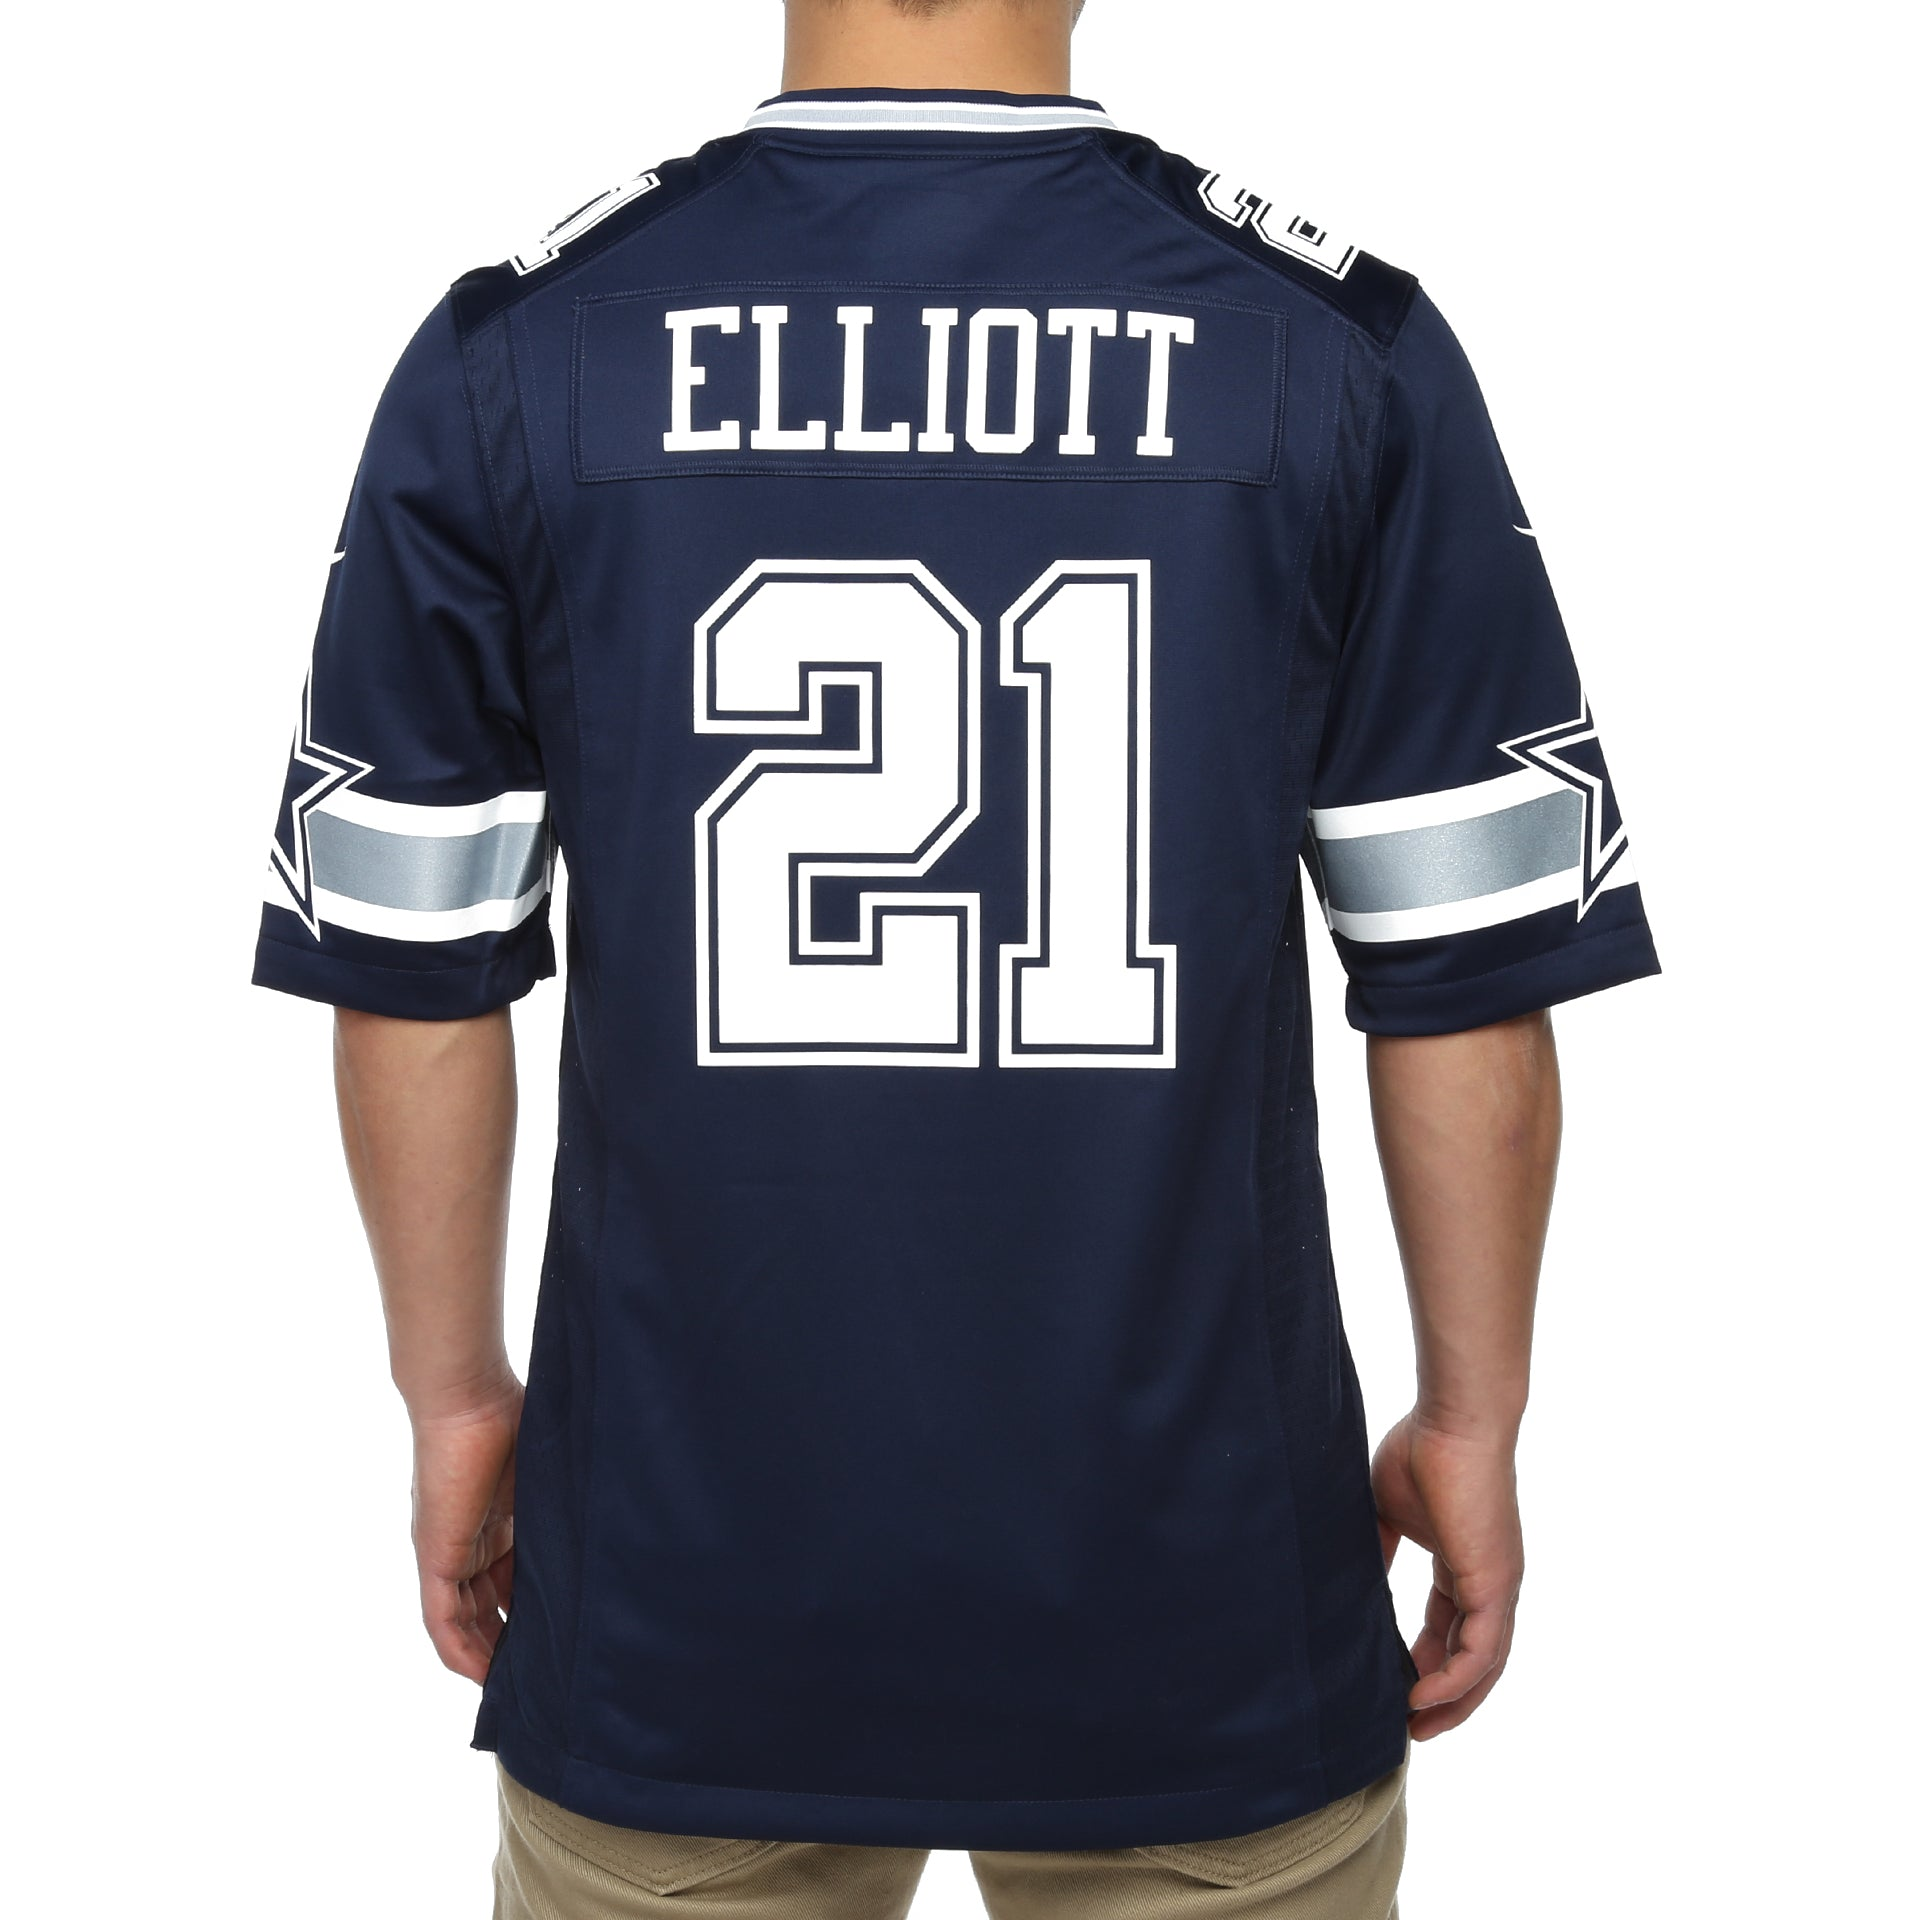 huge selection of ed854 1434f Dallas Cowboys x Nike Ezekiel Elliott #21 Game Replica Jersey - Navy